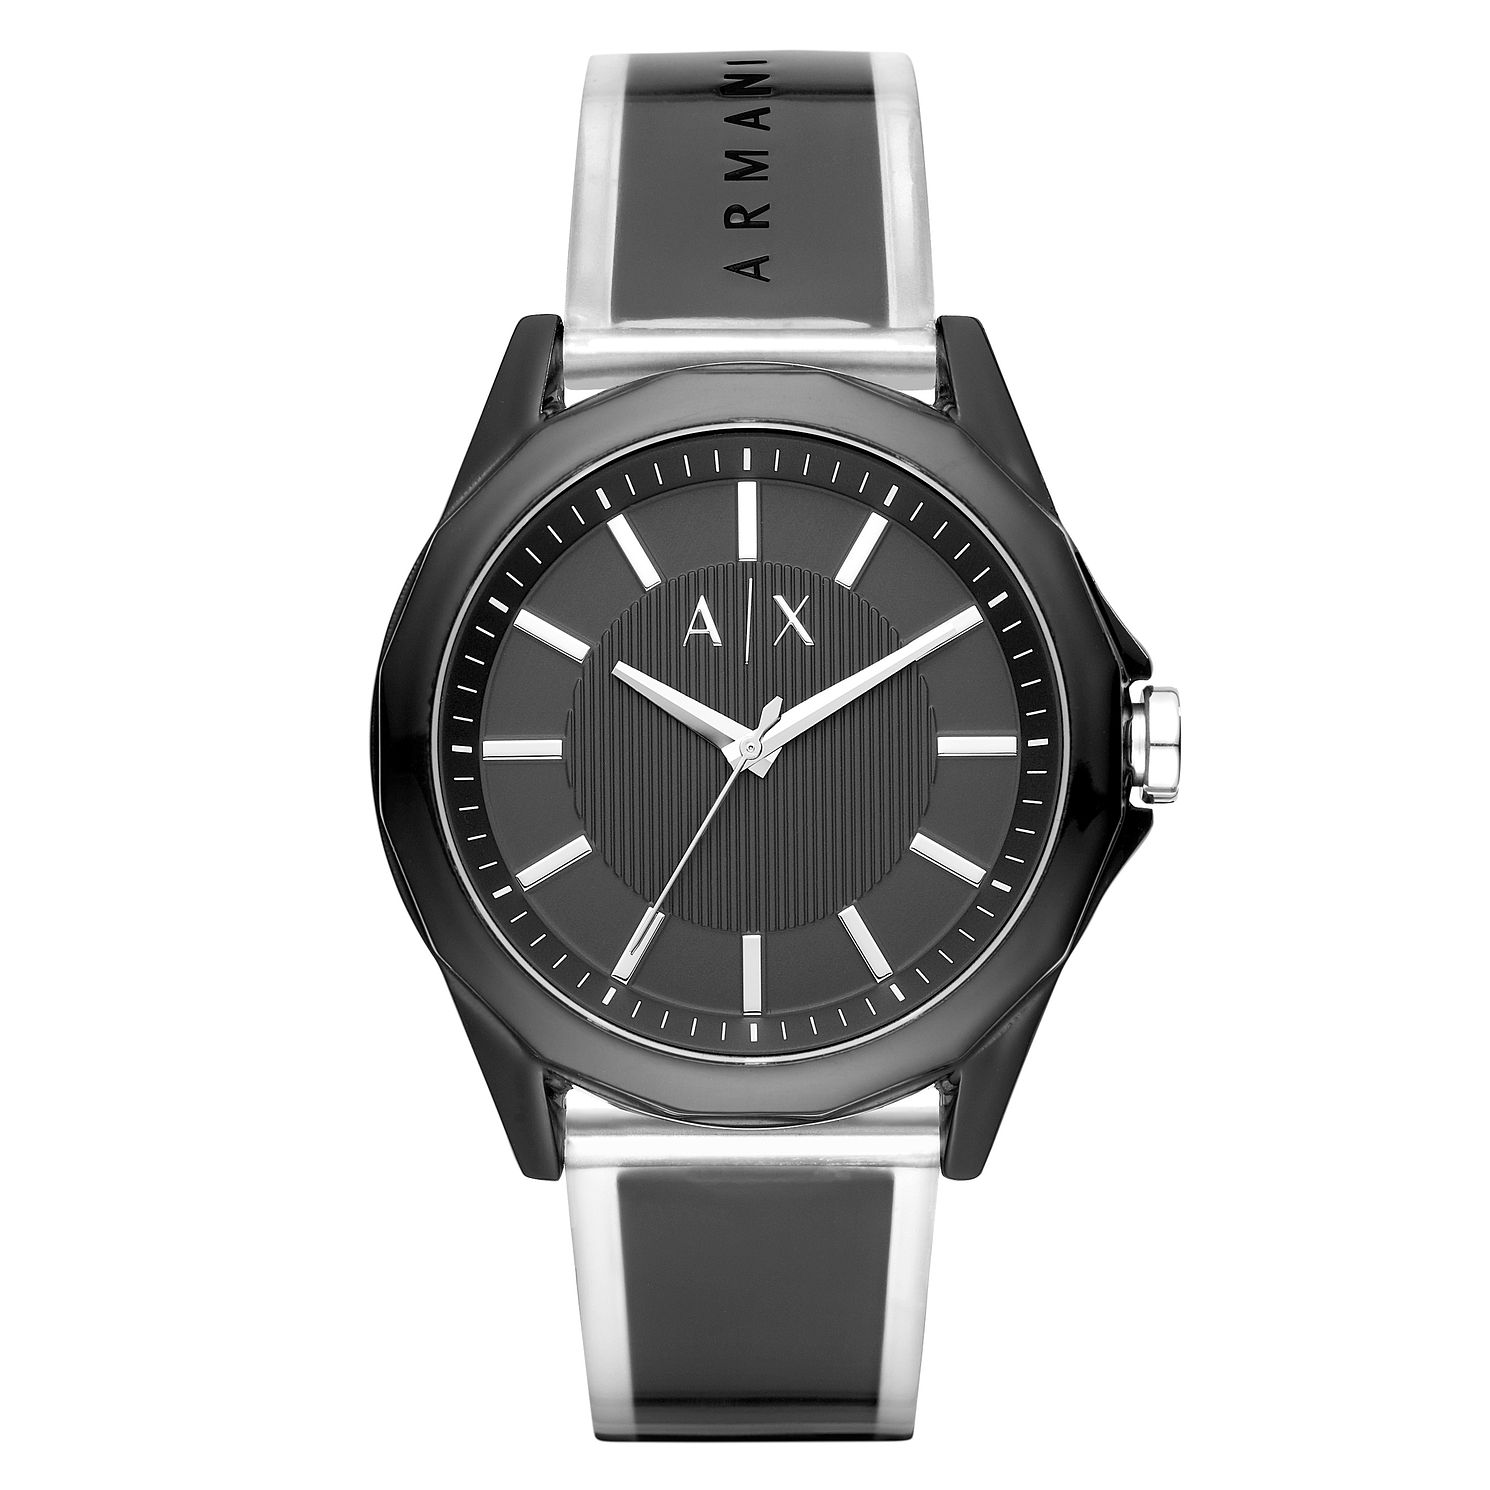 Armani Exchange Men's Black PU Strap Watch - Product number 3178641